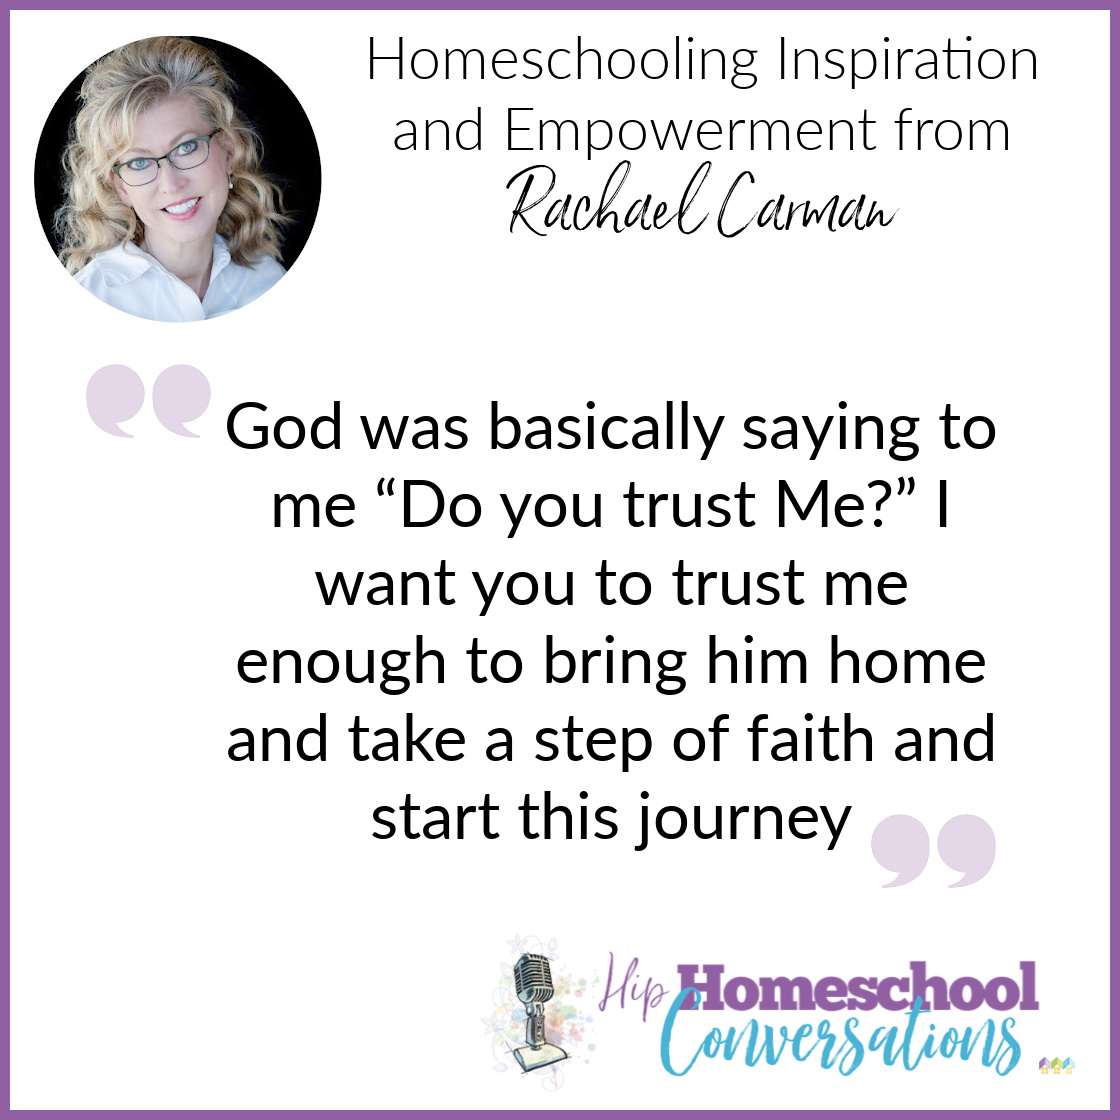 If you have ever felt inadequate to homeschool or just uninterested, join Trish as she interviews Rachael Carman. They discuss everything from butterflies to the Bible in a hilariously funny, truly sincere, and positively encouraging podcast to give Homeschooling Inspiration and Empowerment.